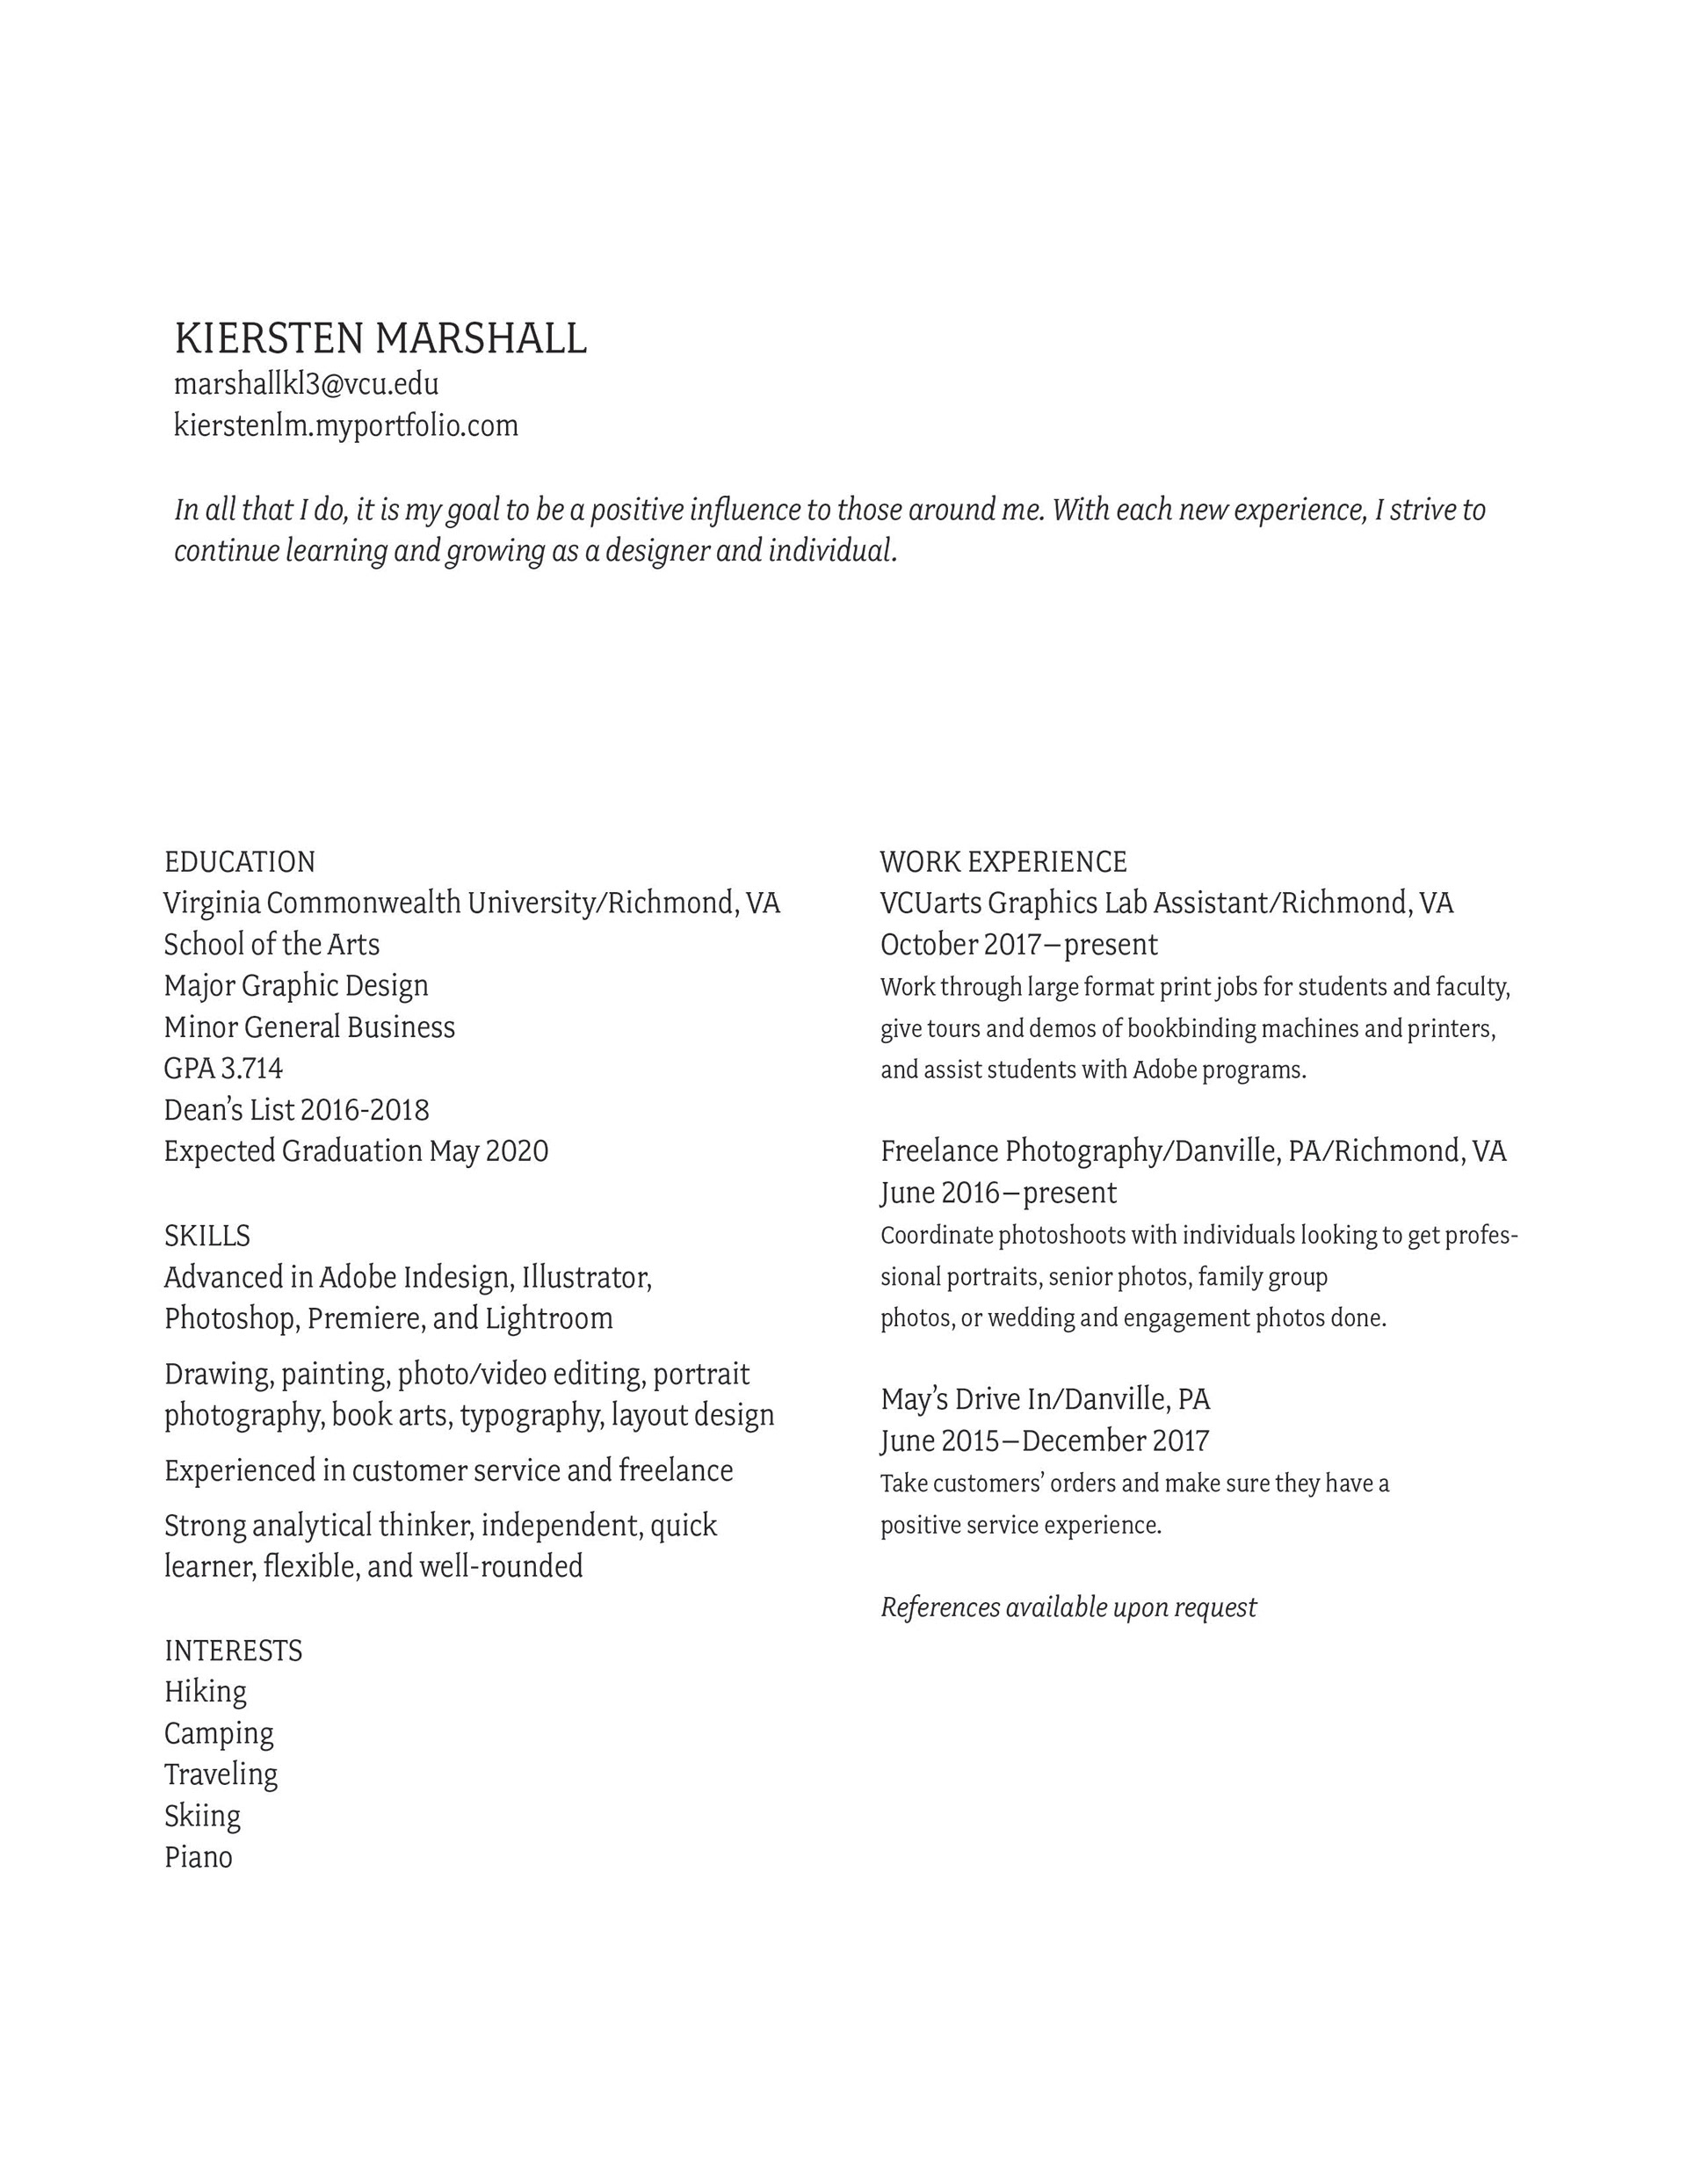 Snap Modern Skills To Add On A Resume Motif Universal Rules For